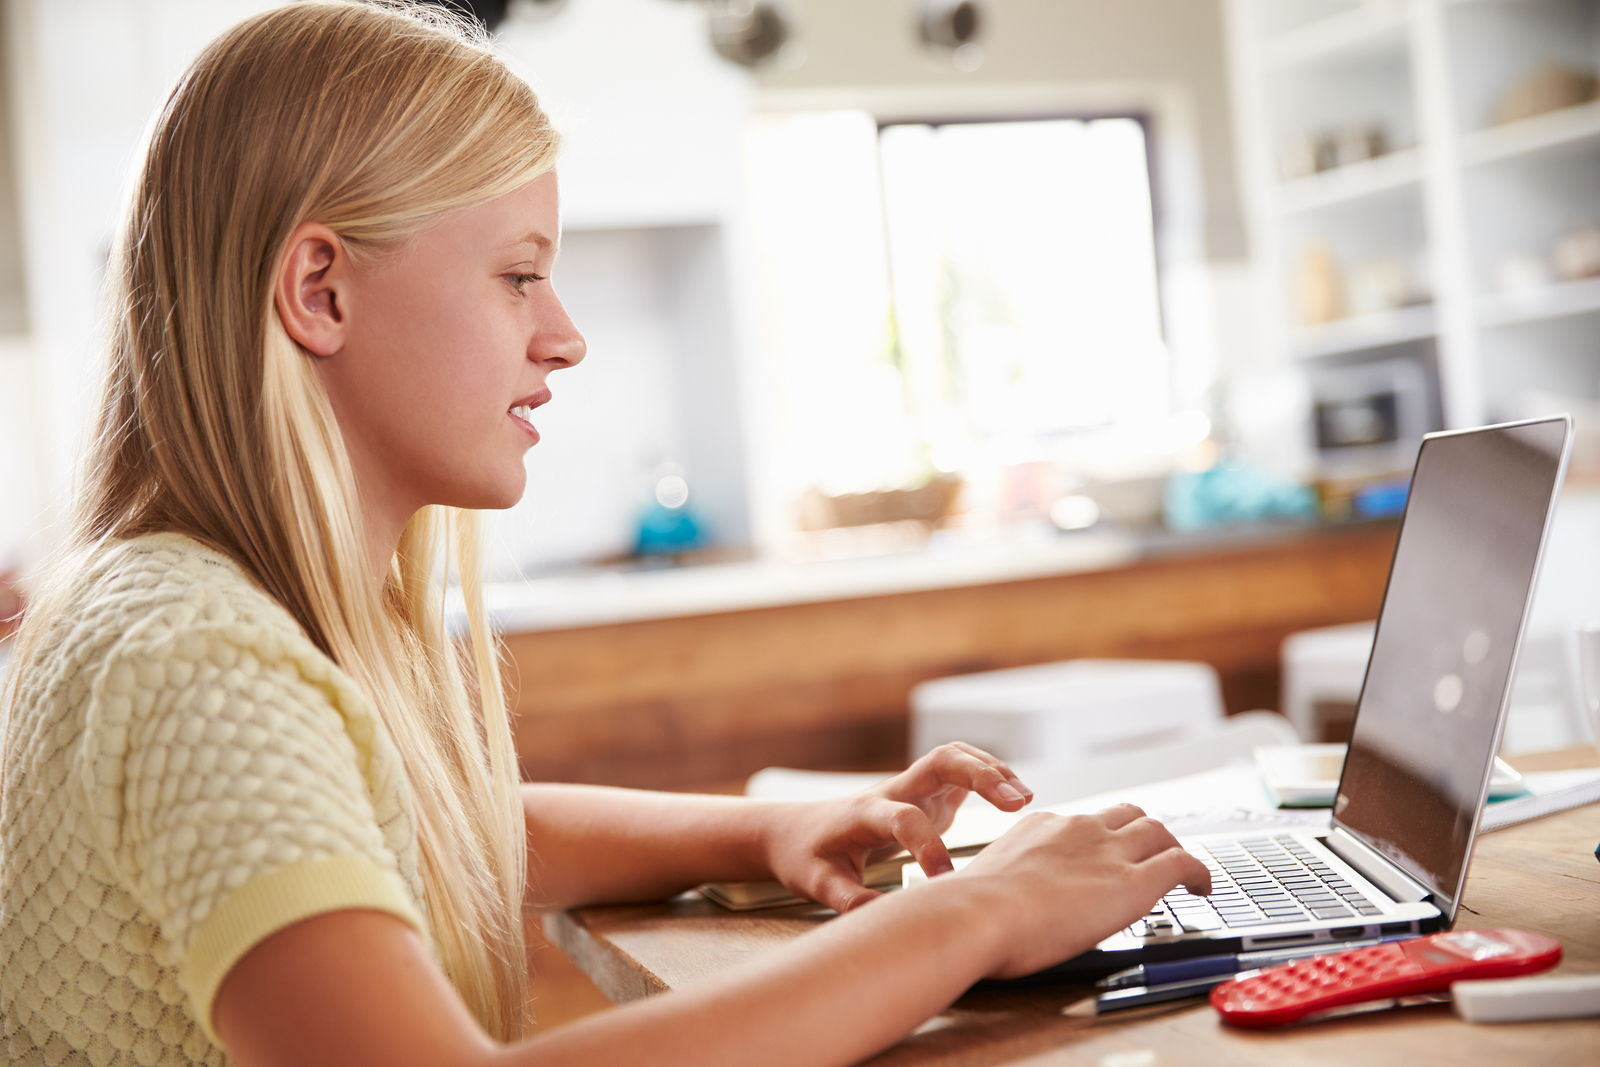 Girl using laptop computer at home